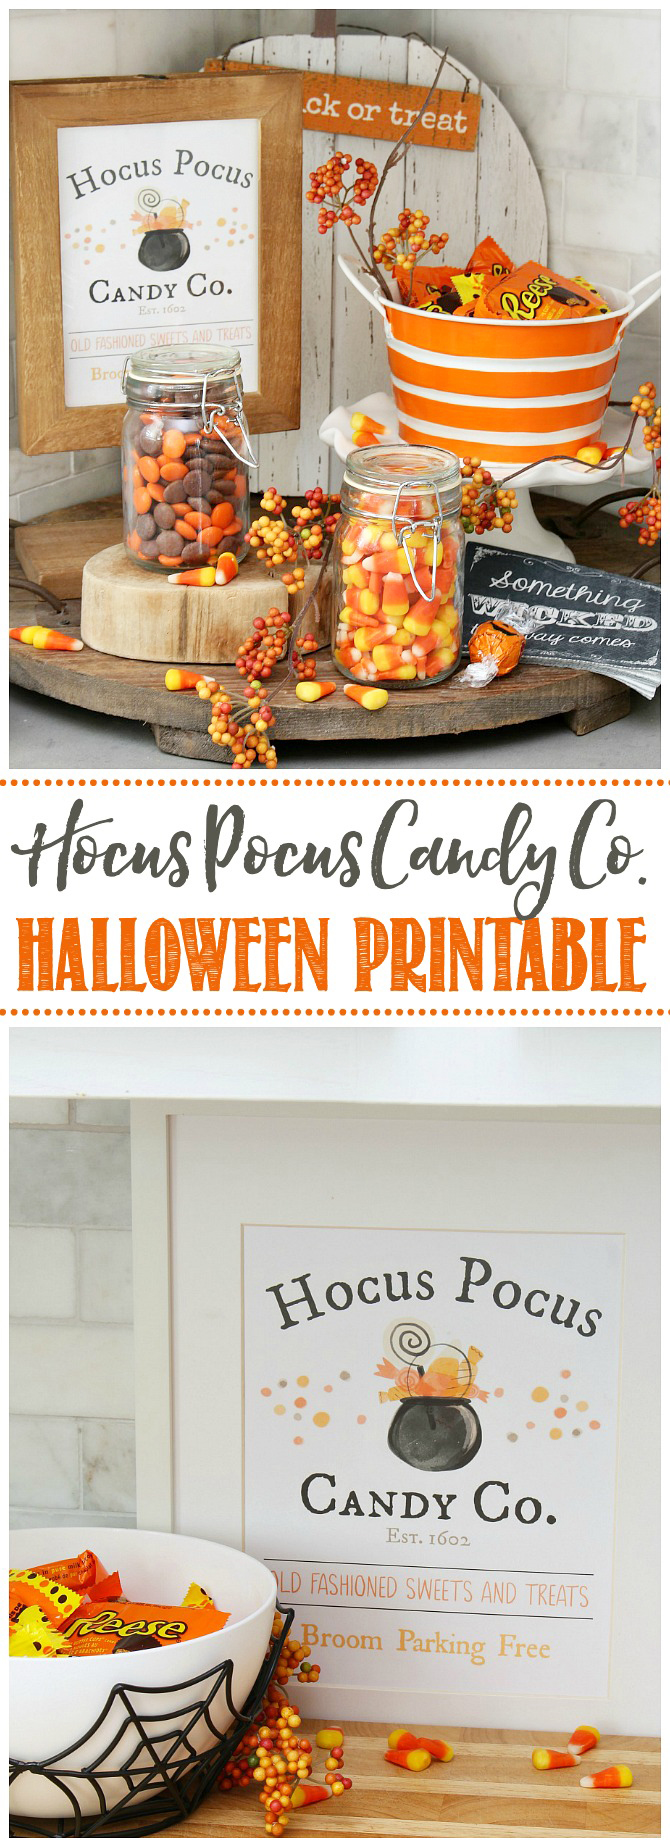 Hocus Pocus Candy Co. free Halloween printable displayed in a frame and used in a fun Halloween candy bar.